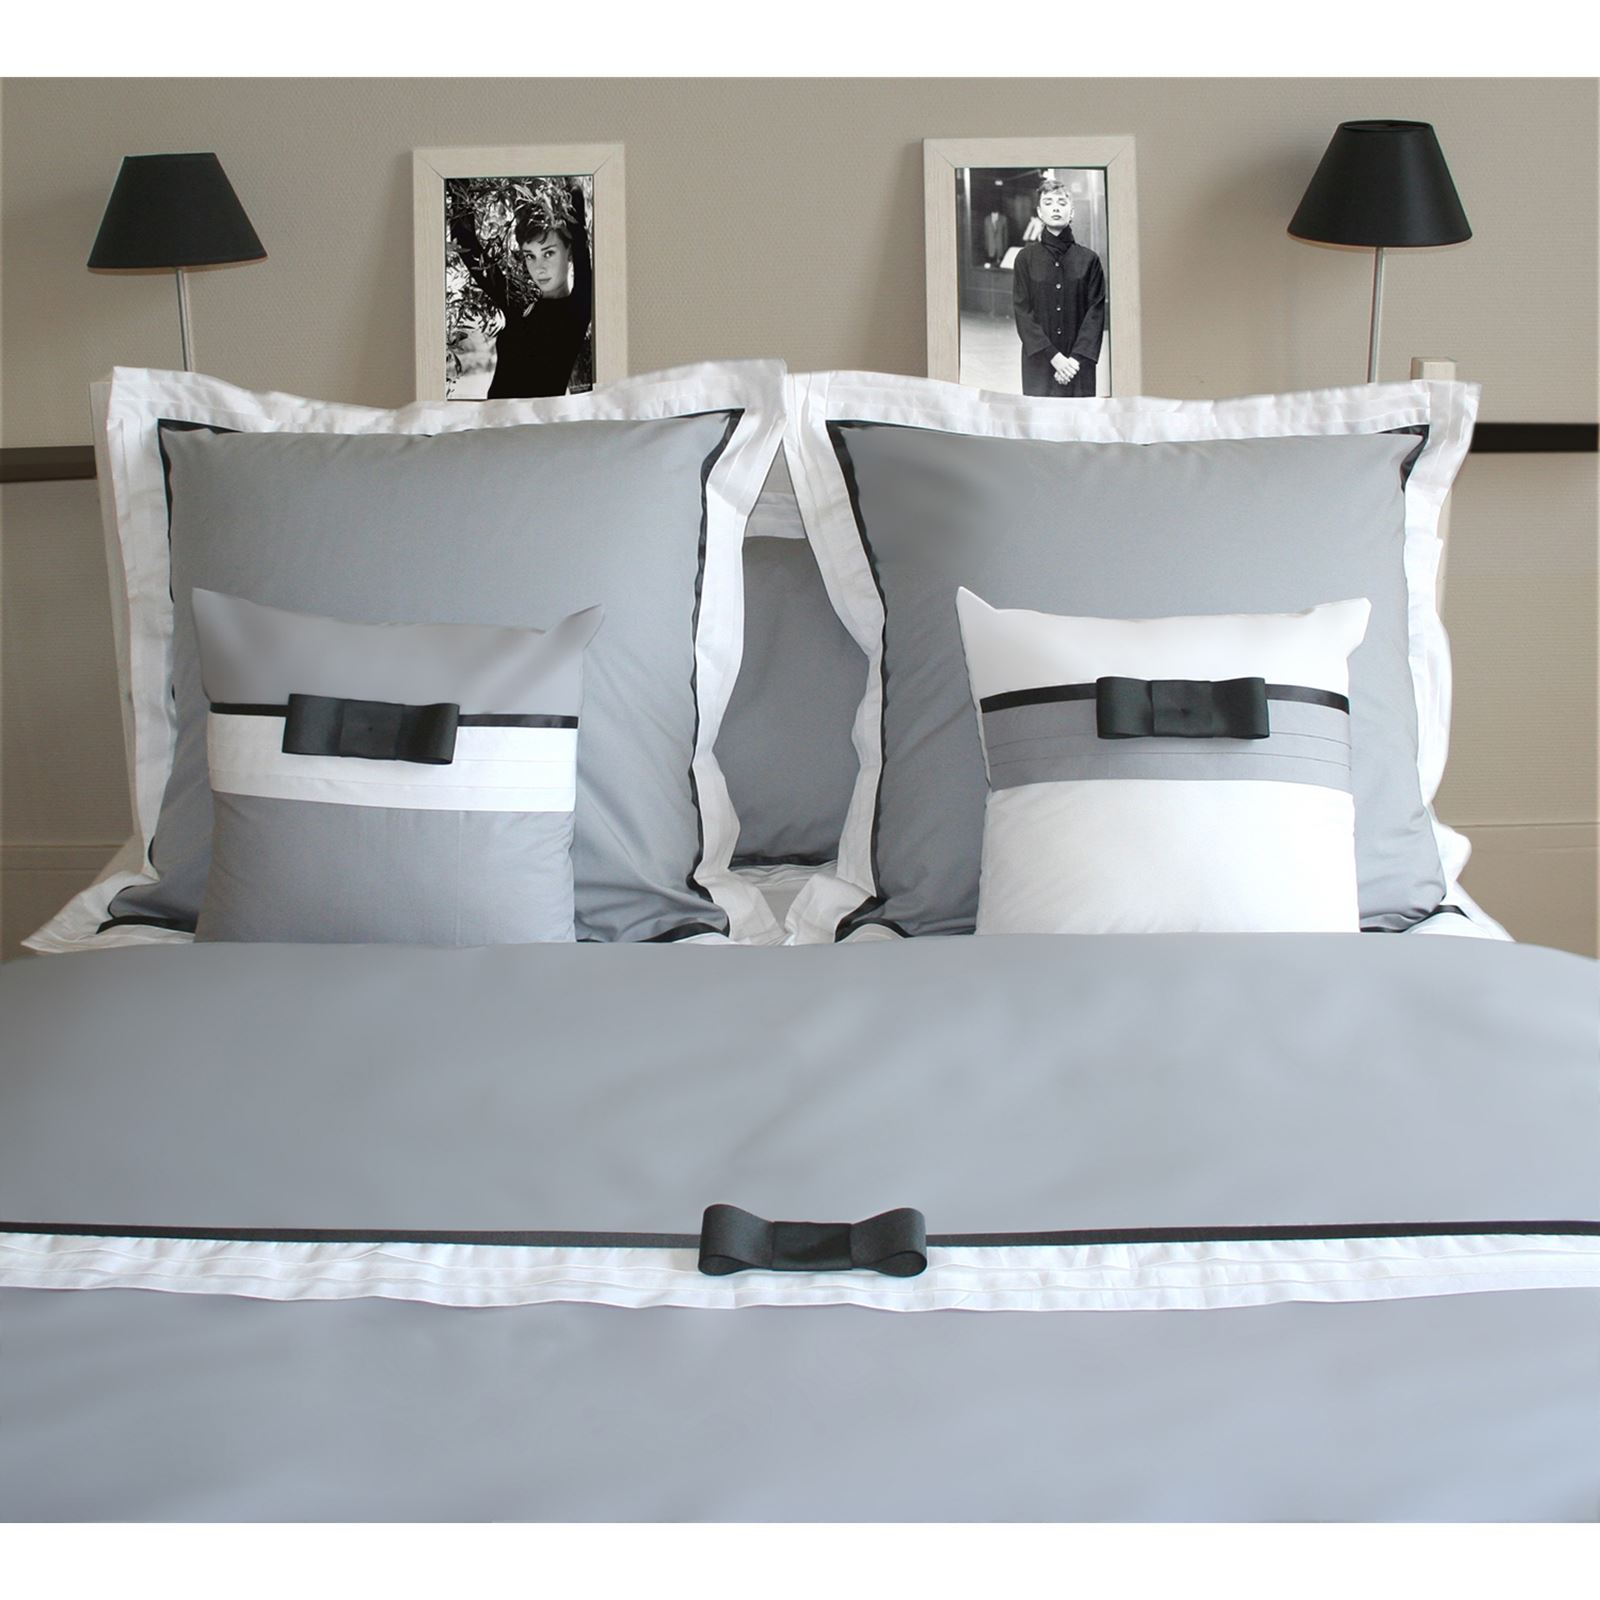 liou audrey h housse de couette gris argent blanc brandalley. Black Bedroom Furniture Sets. Home Design Ideas